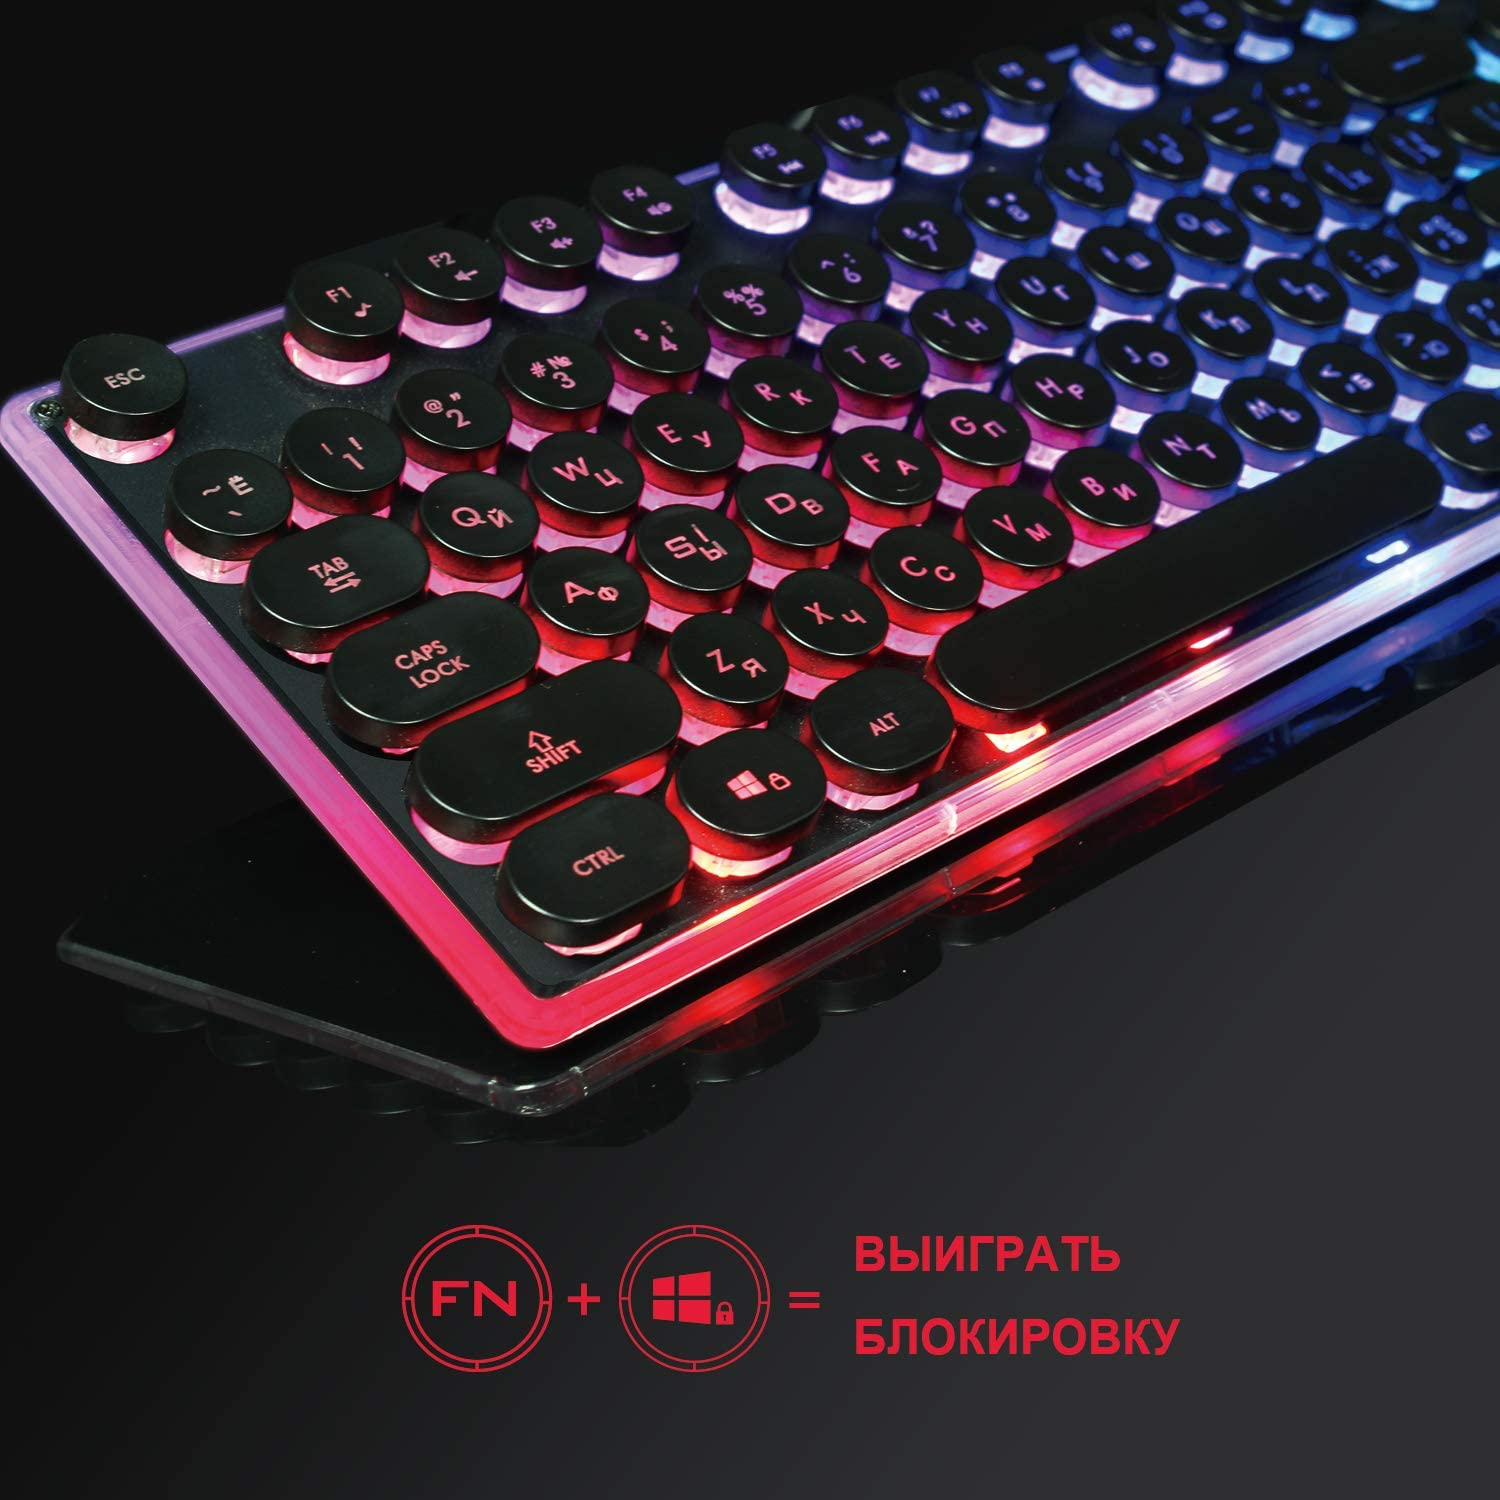 ROWEQPP V300 Backlight Keyboard RGB Glowing Mouse Suit for Game Home Office Laptop Desktop Ergonomic Russian Suit